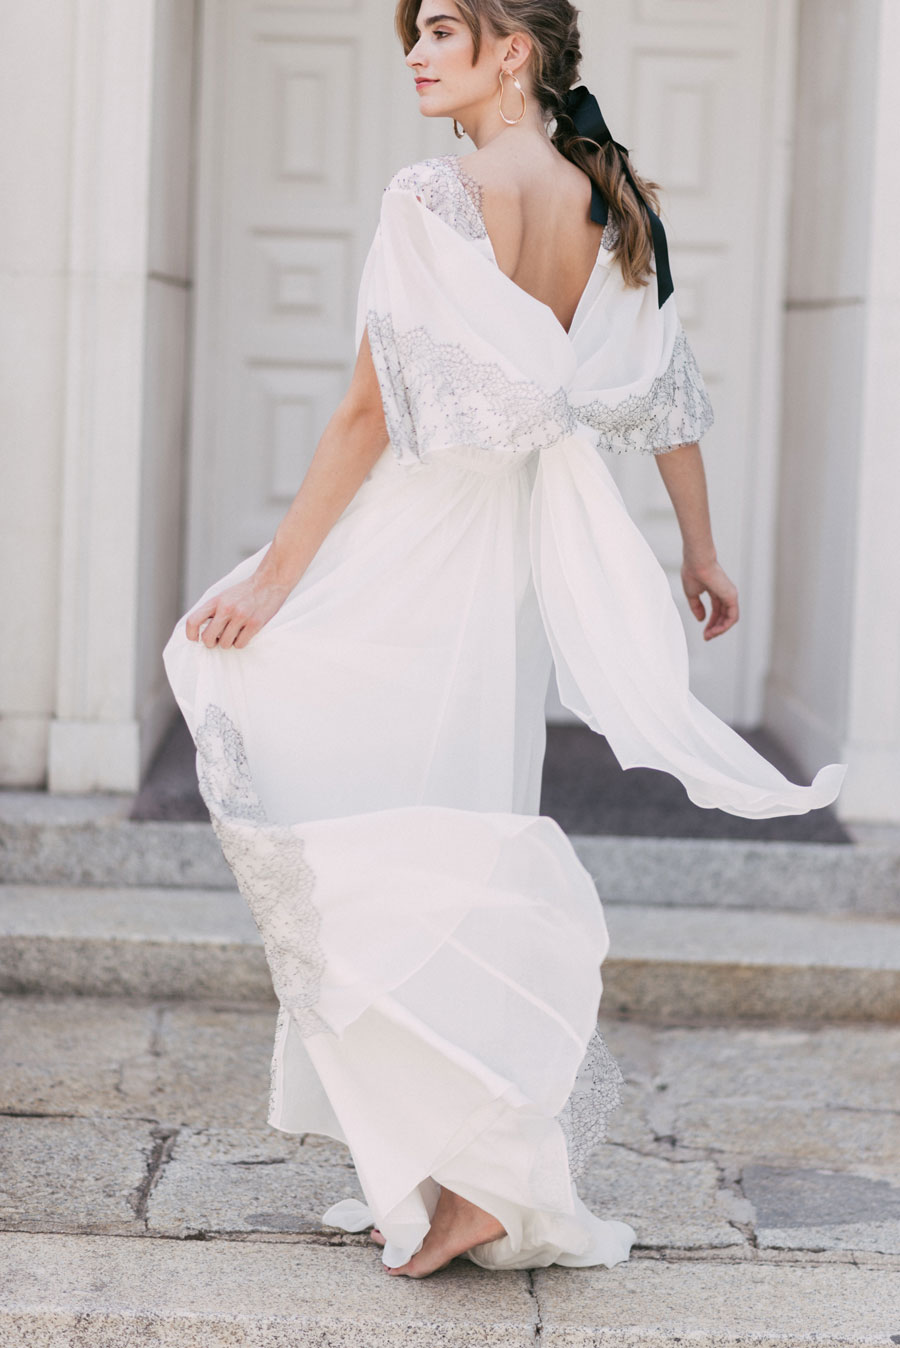 Beba's Closet: The 10th Anniversary Bridal Collection!